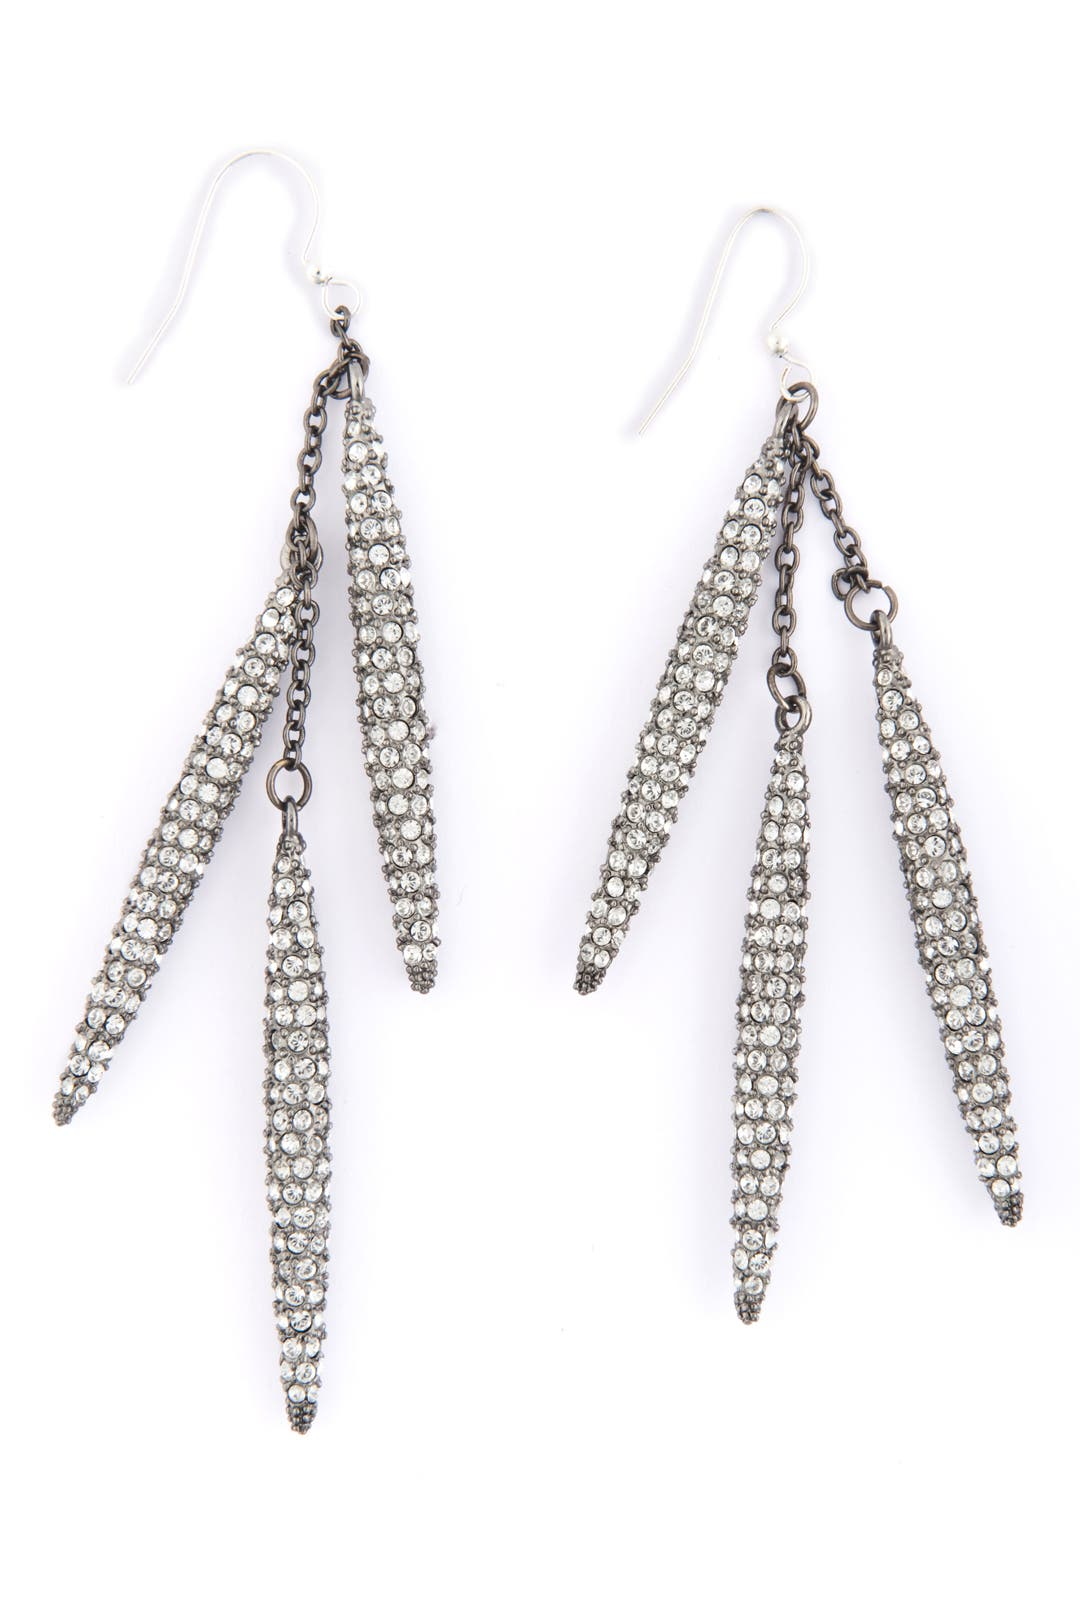 Pave Caryn Spear Earrings by CC Skye